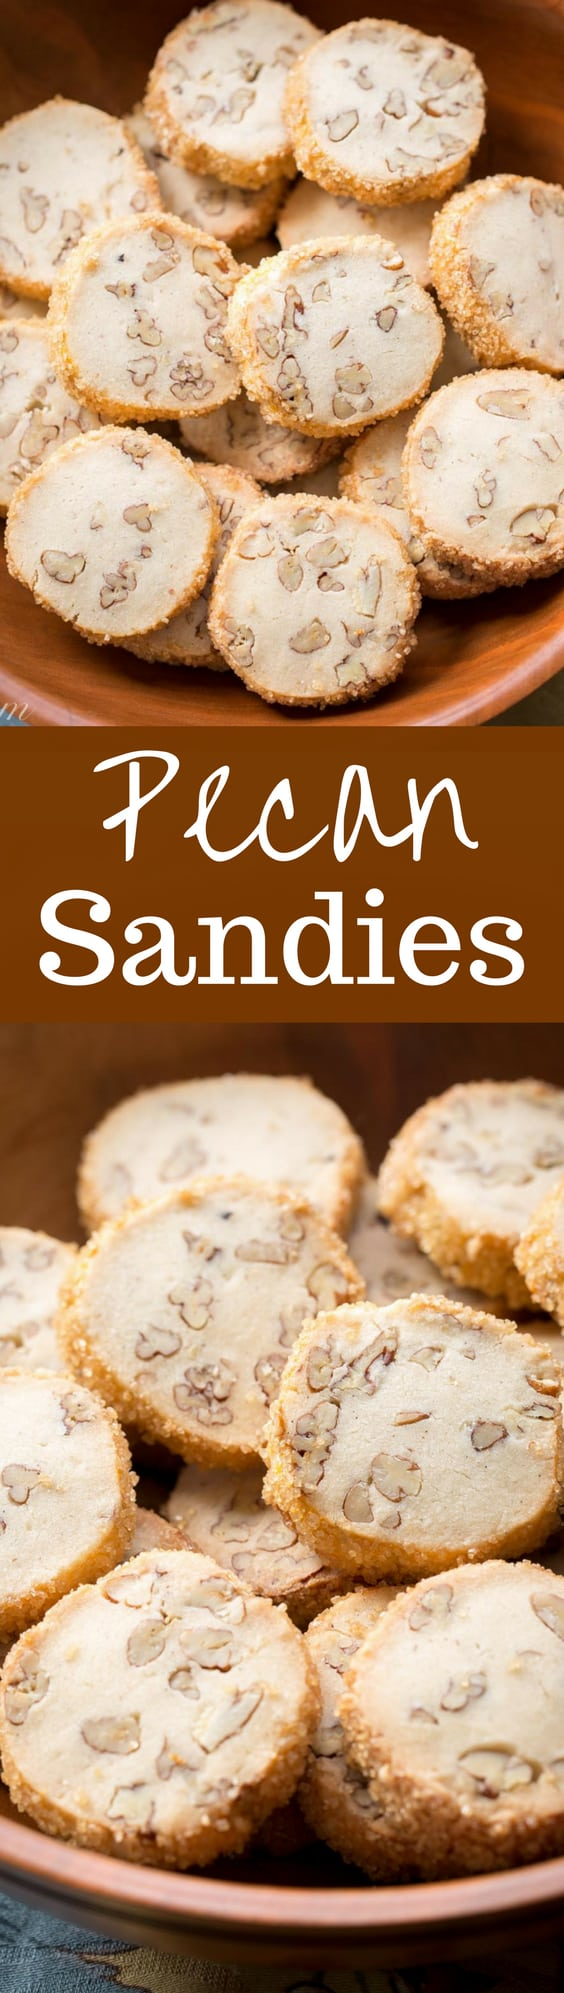 Pecan Sandies ~ Classic shortbread cookies filled with toasted pecans ...